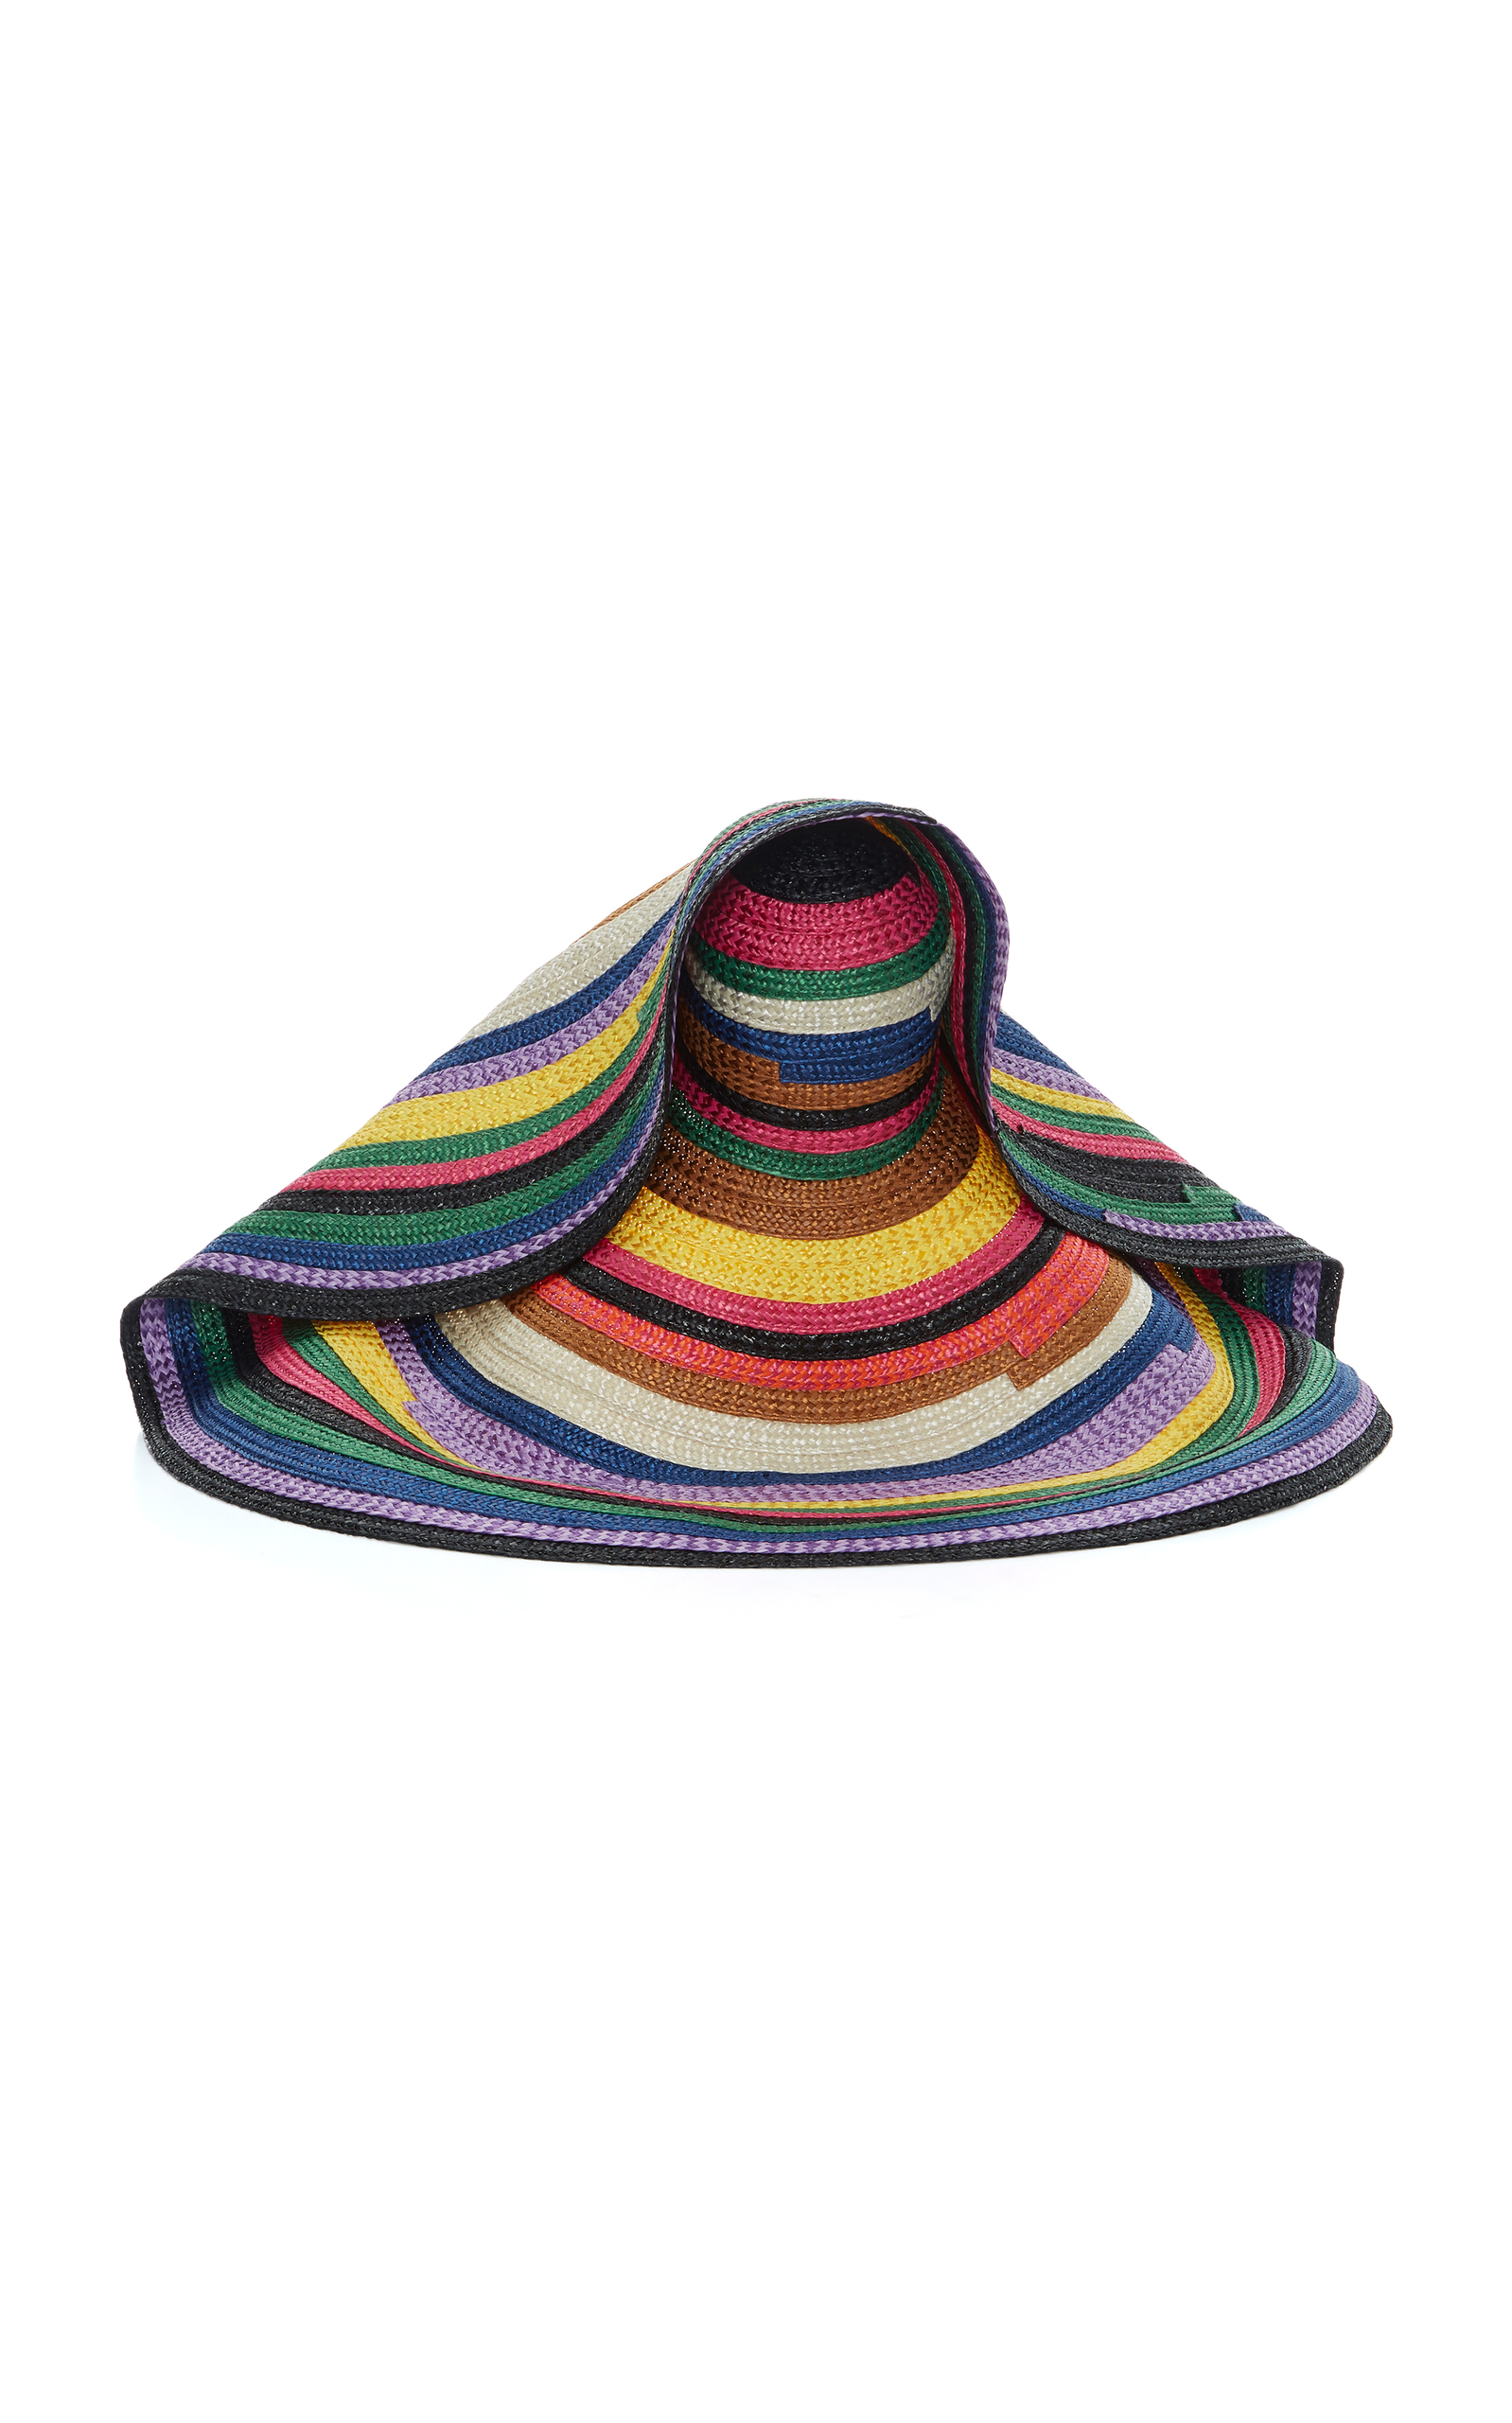 Extra Wide Brim Sunhat Multi by Missoni  866f37aedc7d